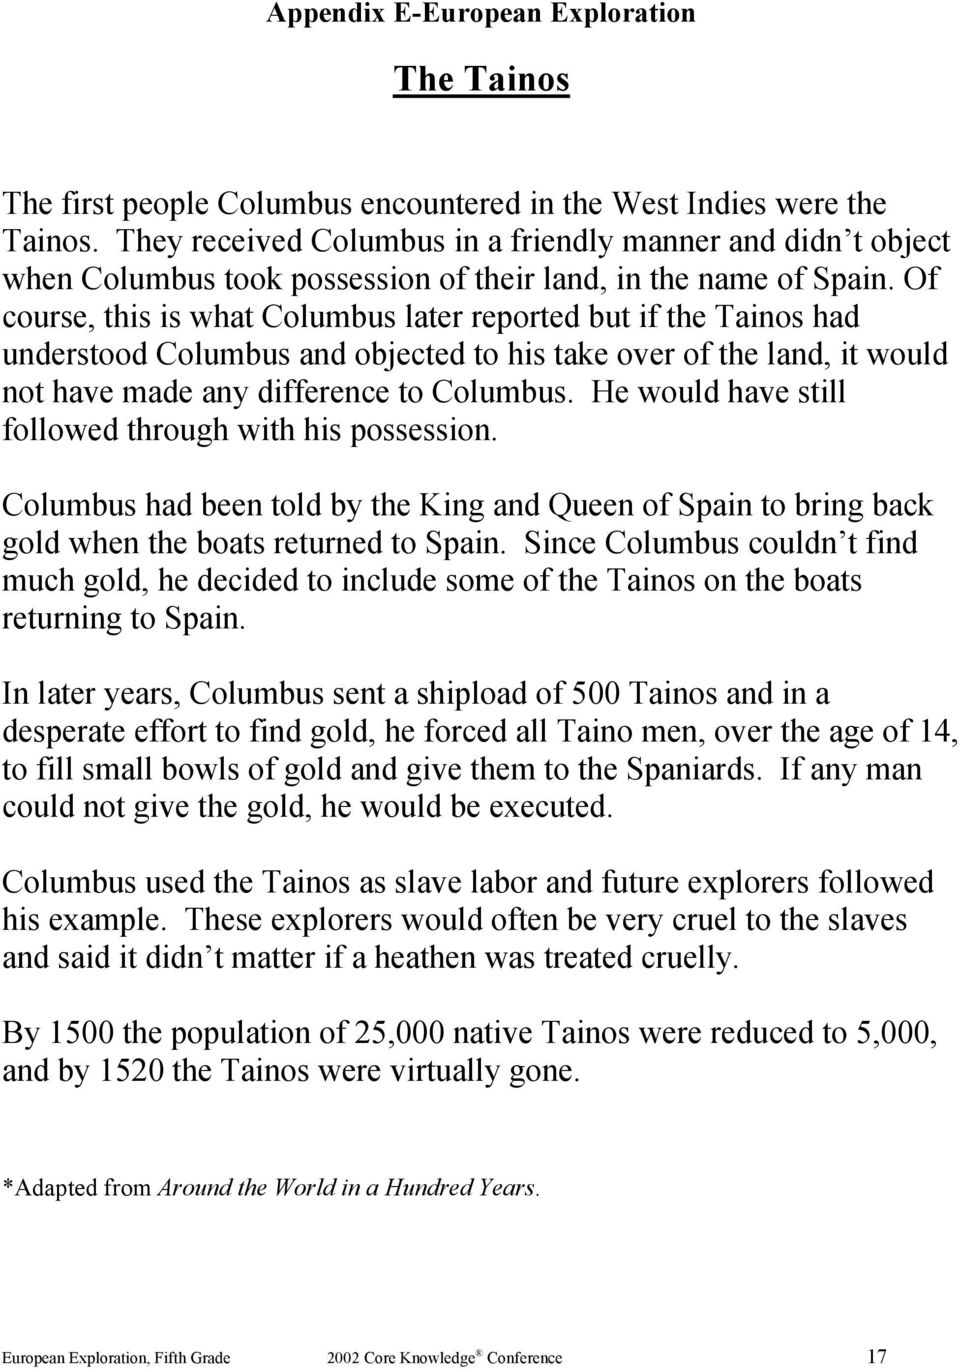 Of course, this is what Columbus later reported but if the Tainos had understood Columbus and objected to his take over of the land, it would not have made any difference to Columbus.